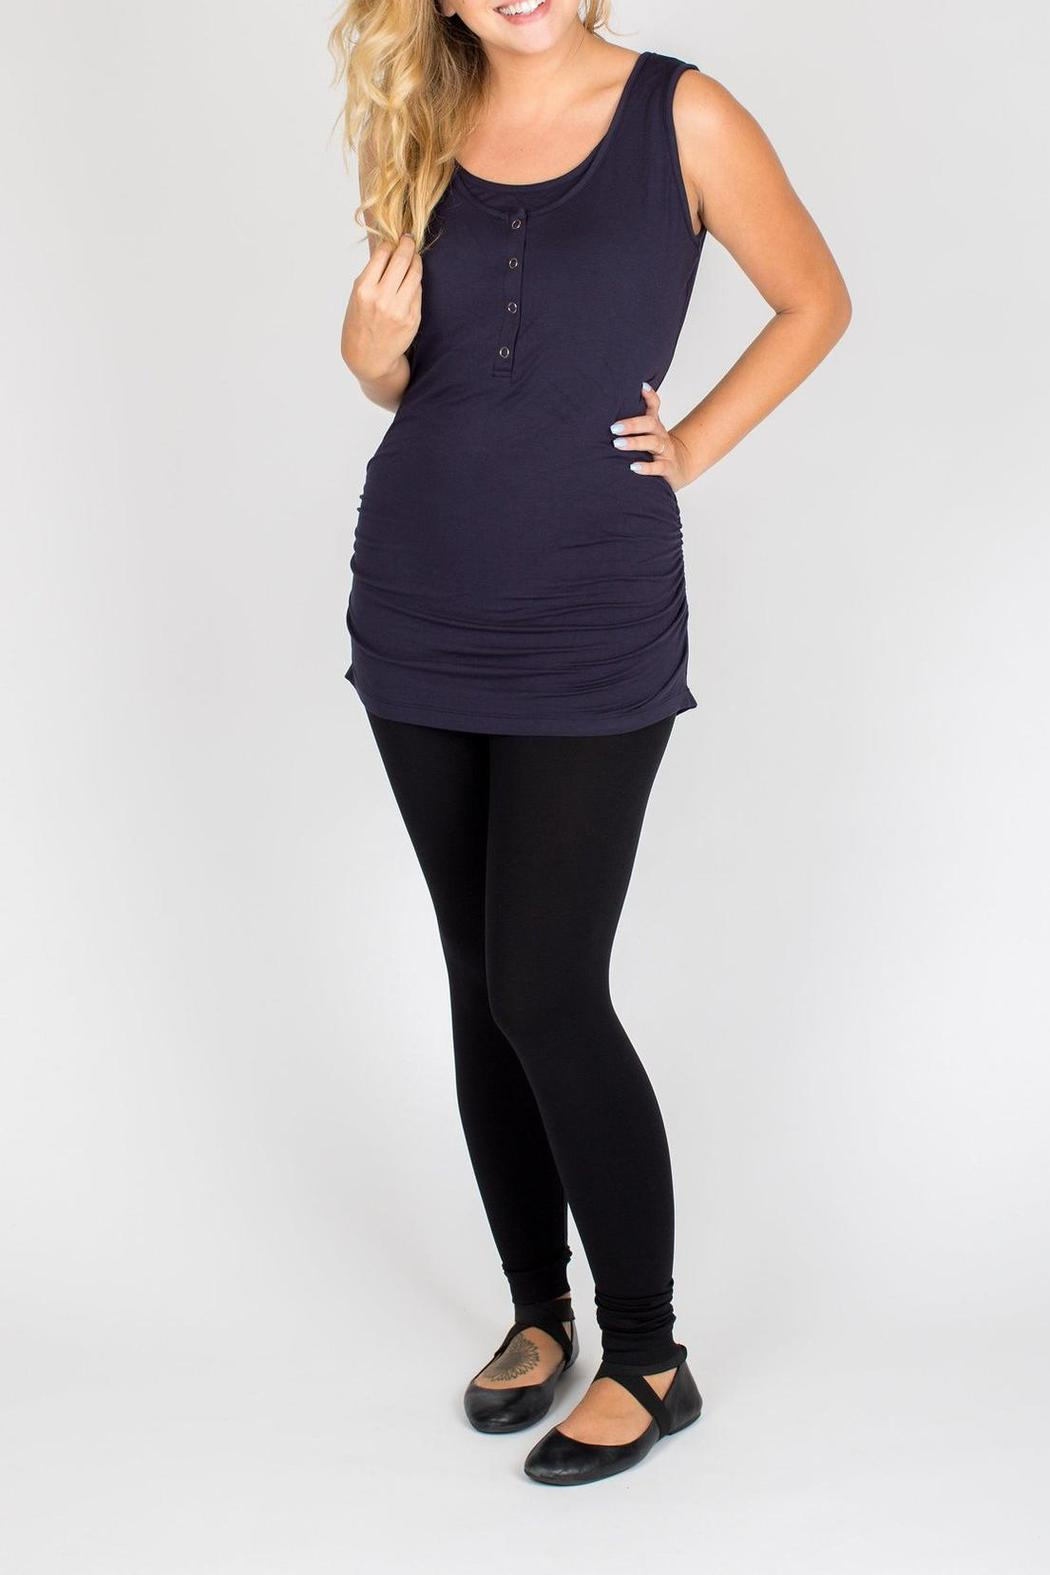 NOM Maternity Snap Nursing Tank - Front Cropped Image